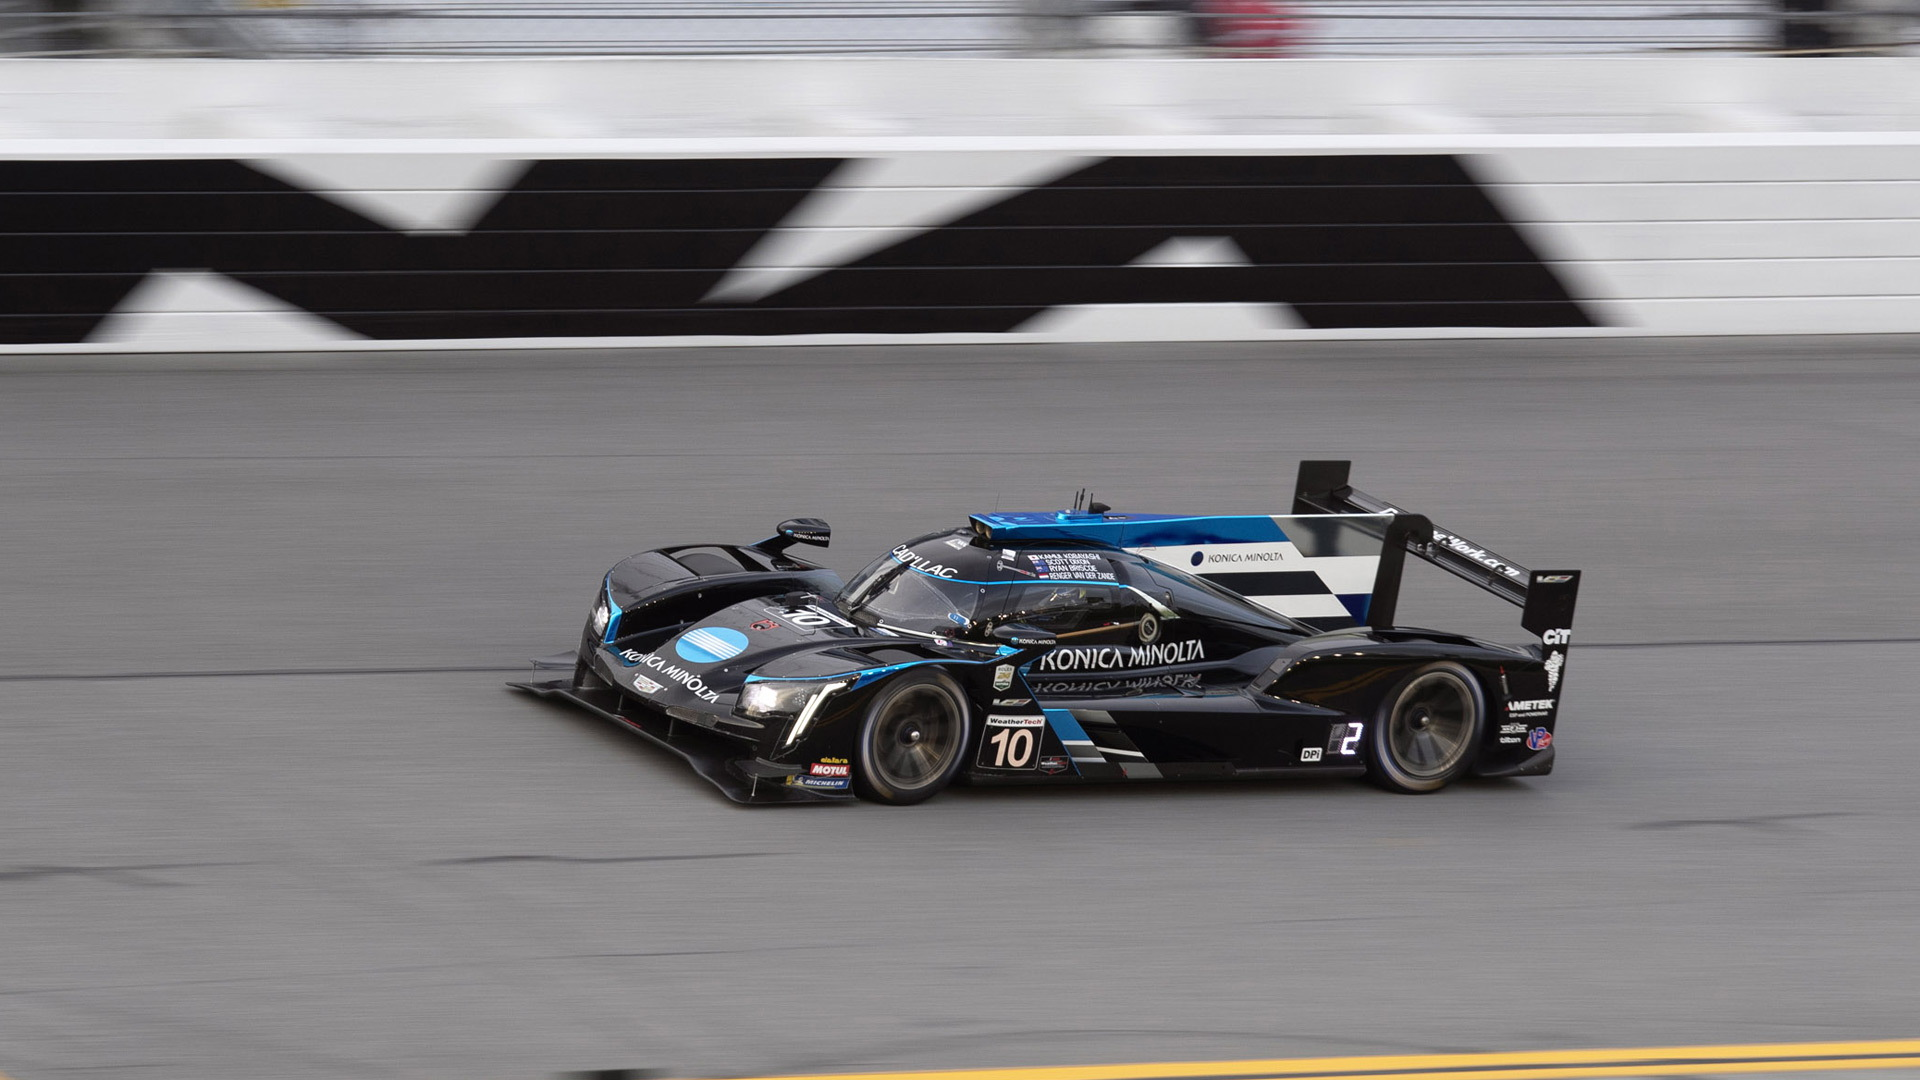 No. 10 Konica Minola Cadillac DPi-V.R of Wayne Talylor Racing at the 2020 Rolex 24 at Daytona